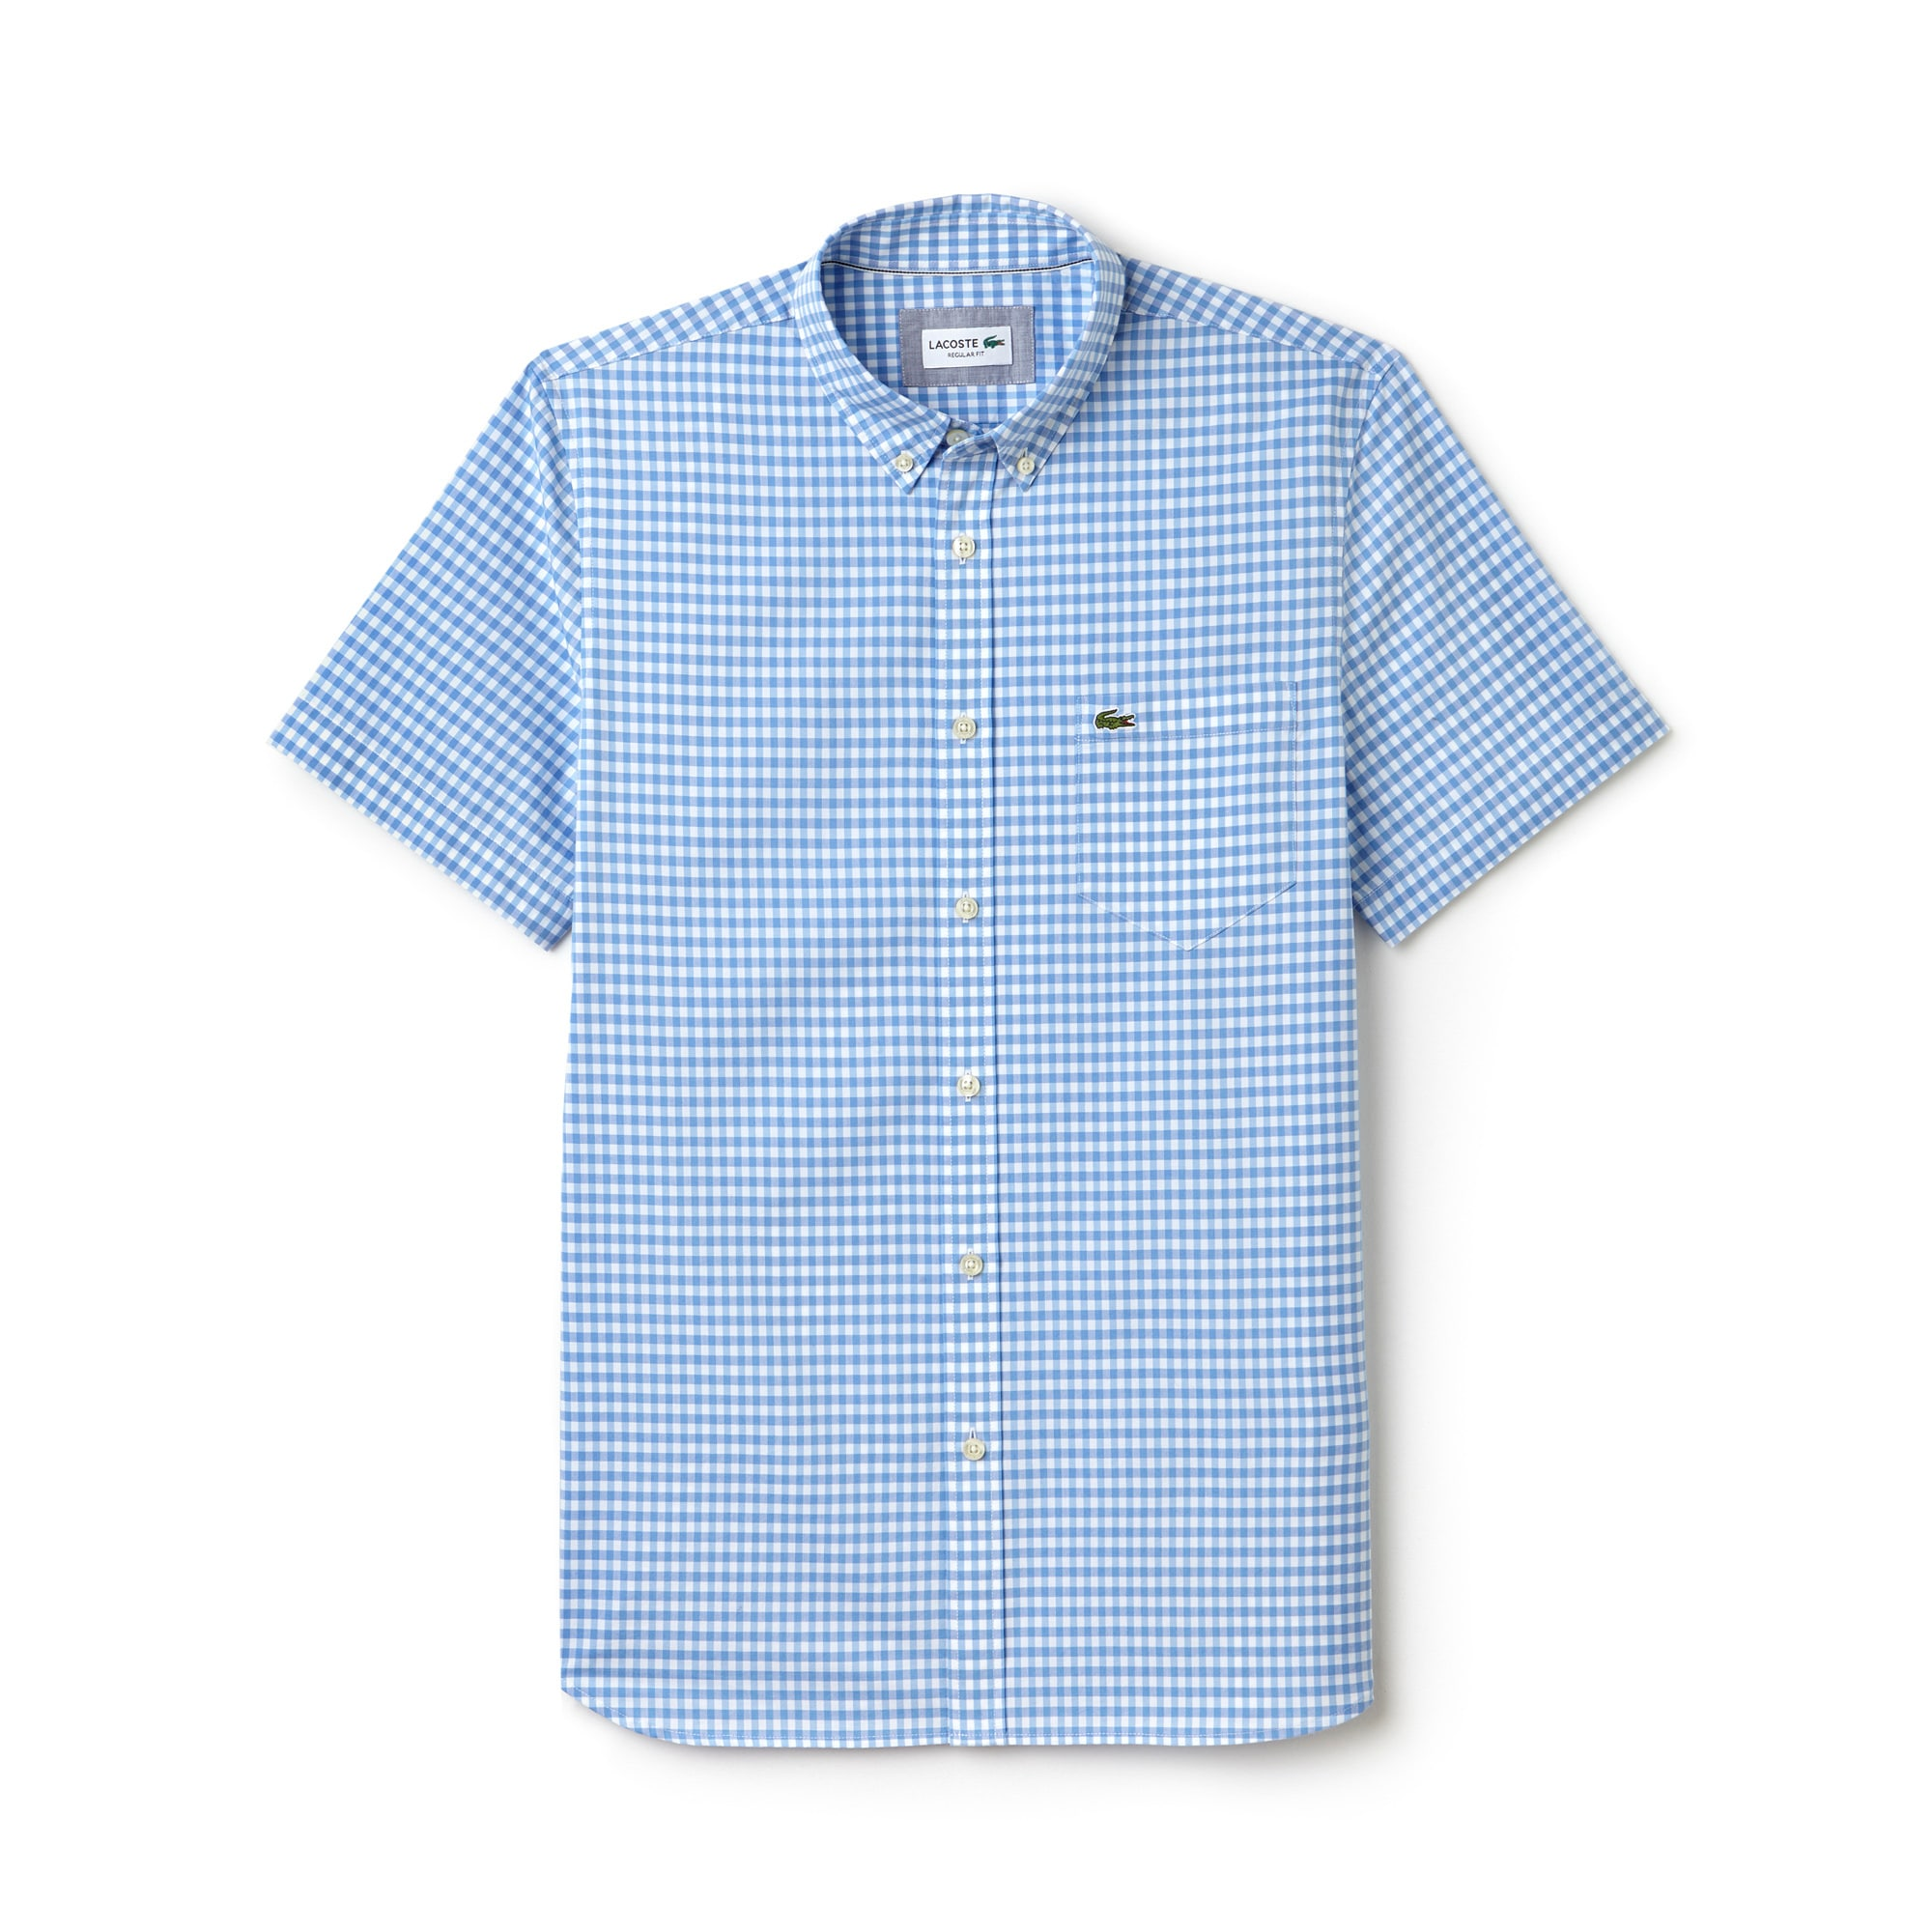 Men's Regular Fit Gingham Poplin Shirt